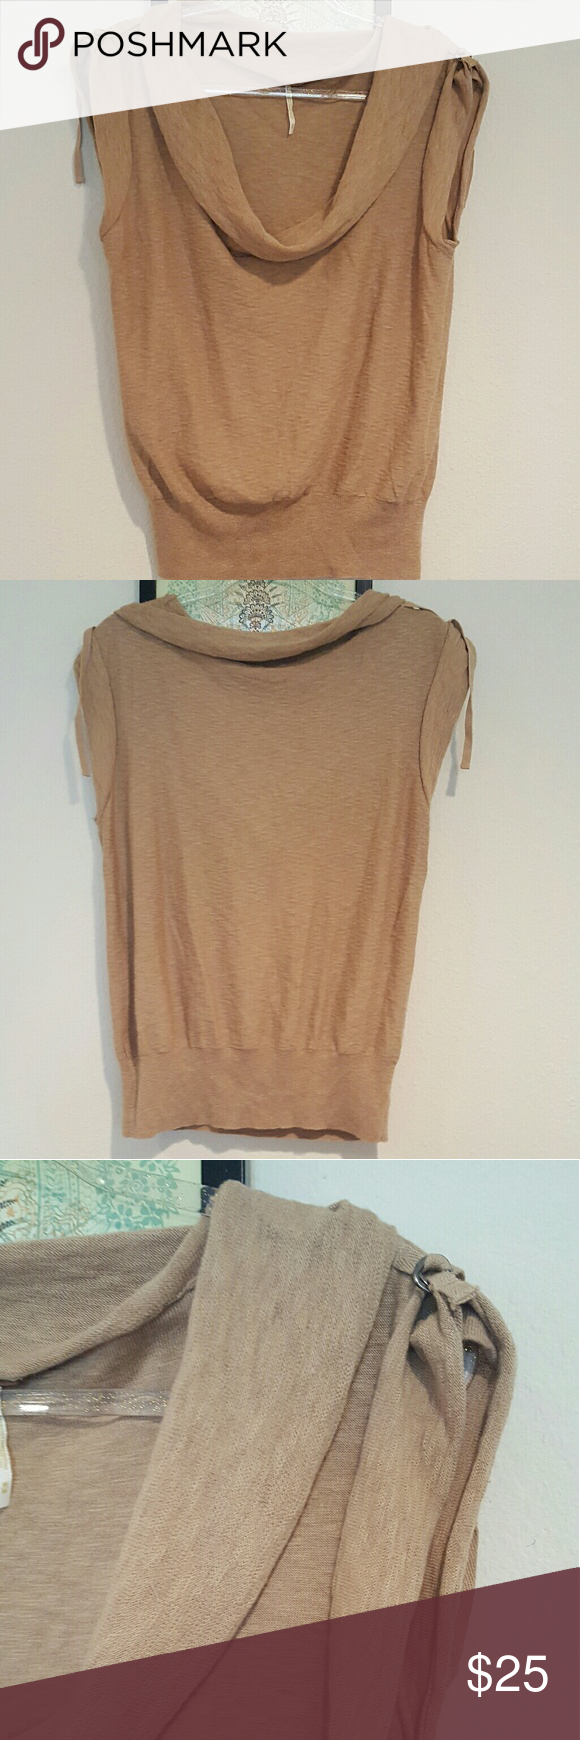 Free people Knit Blouse Free People cowl neck knit blouse with buckle details on shoulders. Euc Free People Tops Blouses